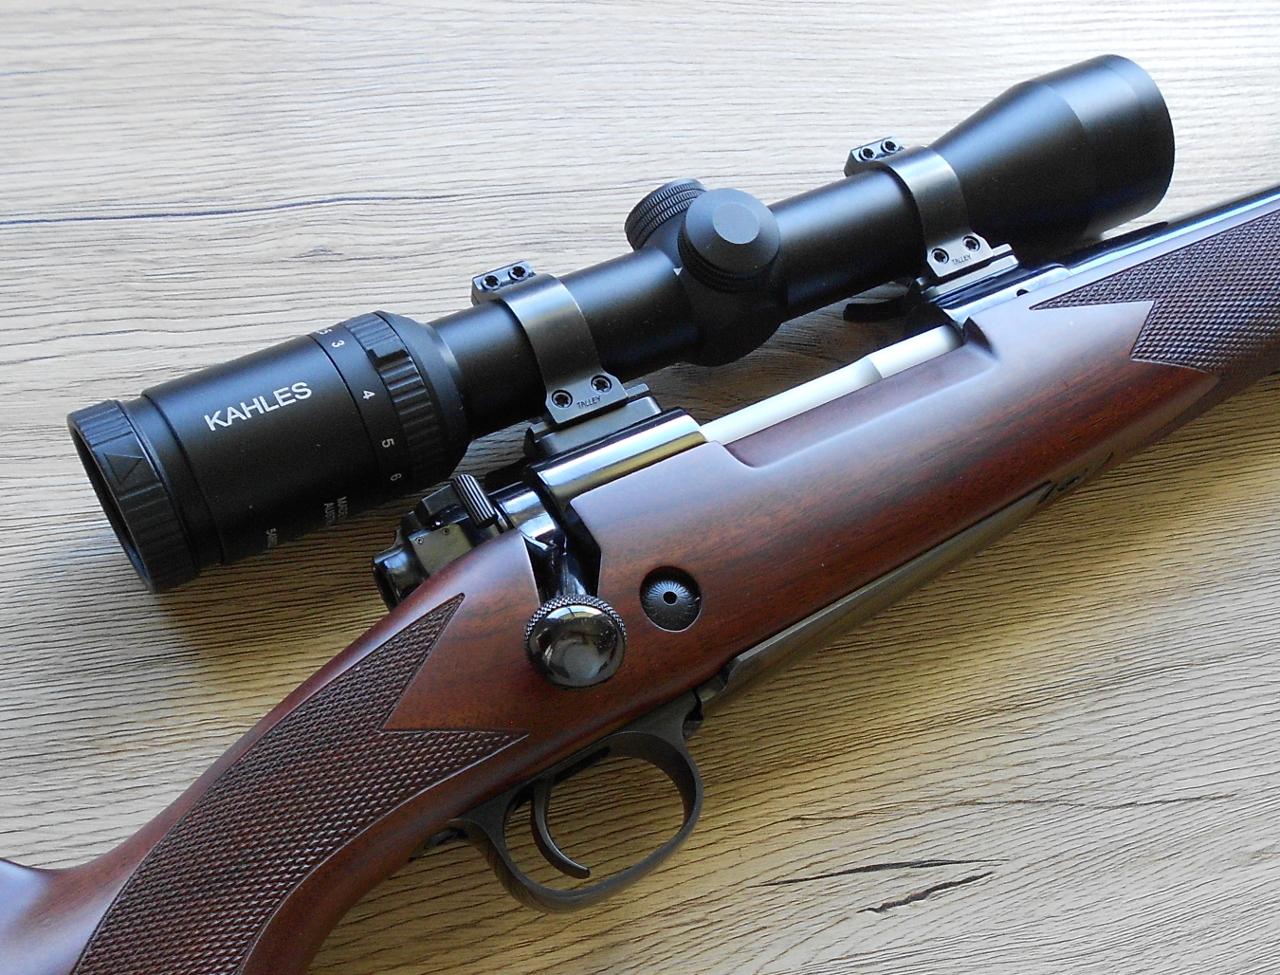 Captured in this picture are twelve reasons a rifle owner needs a good torque screwdriver. There are eight rifle-scope ring screws visible and another two on the left side of the rifle that are not visible. There are also two action screws.